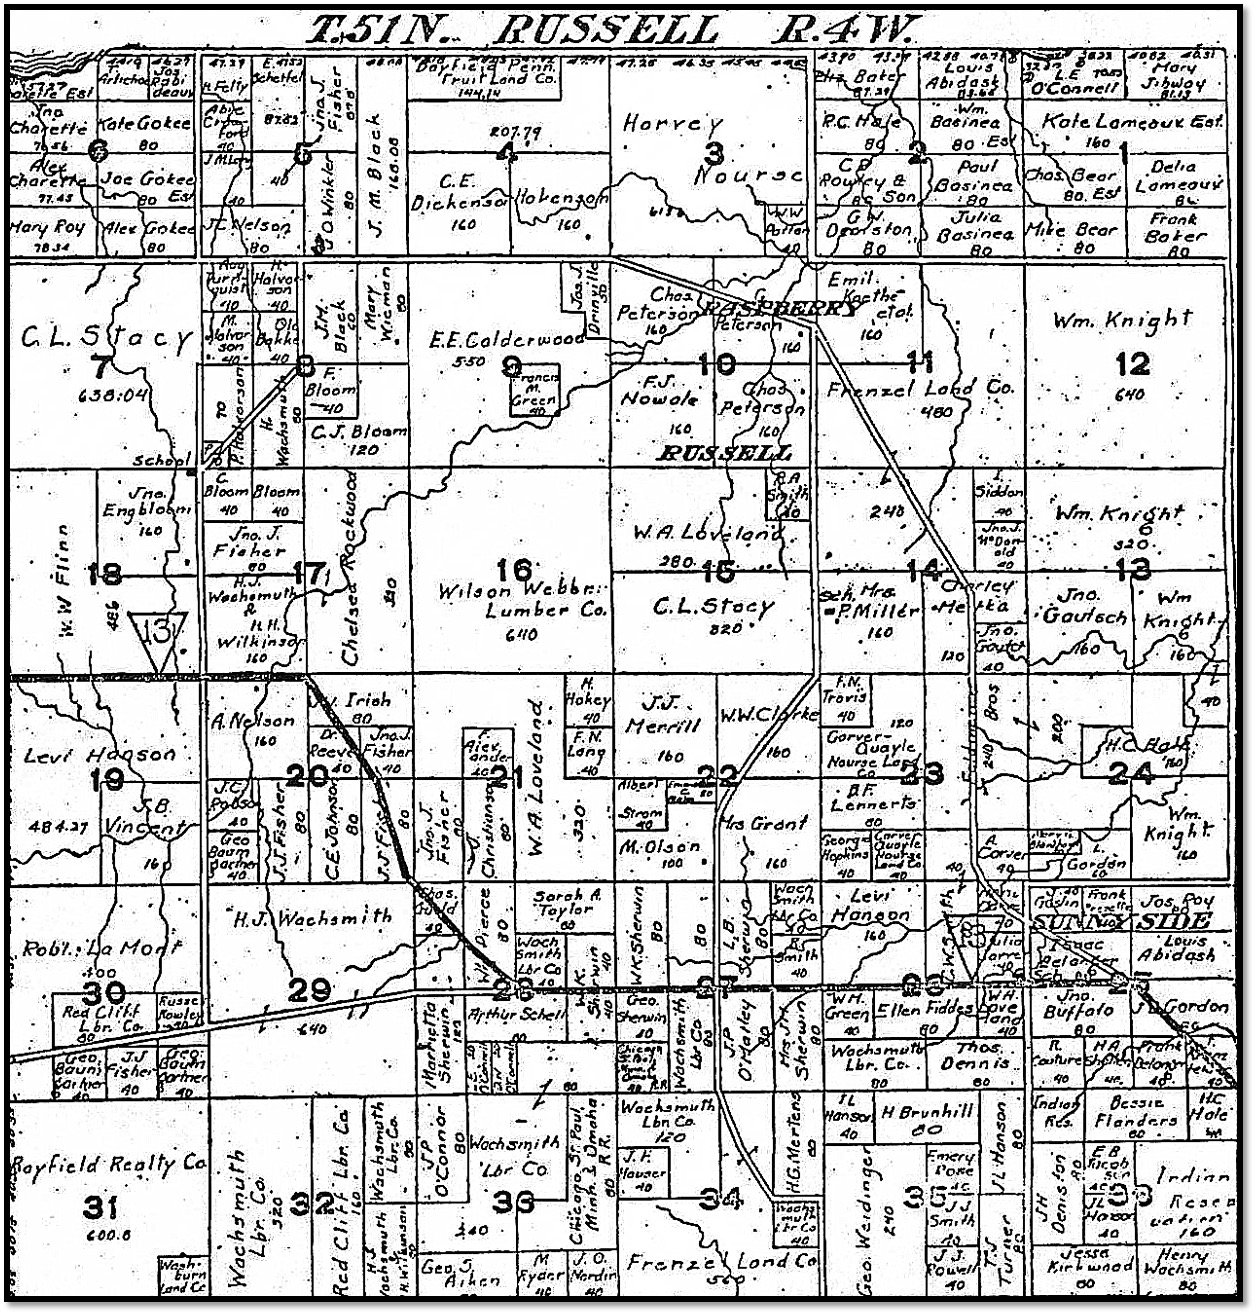 1906 Town of Russell Plat